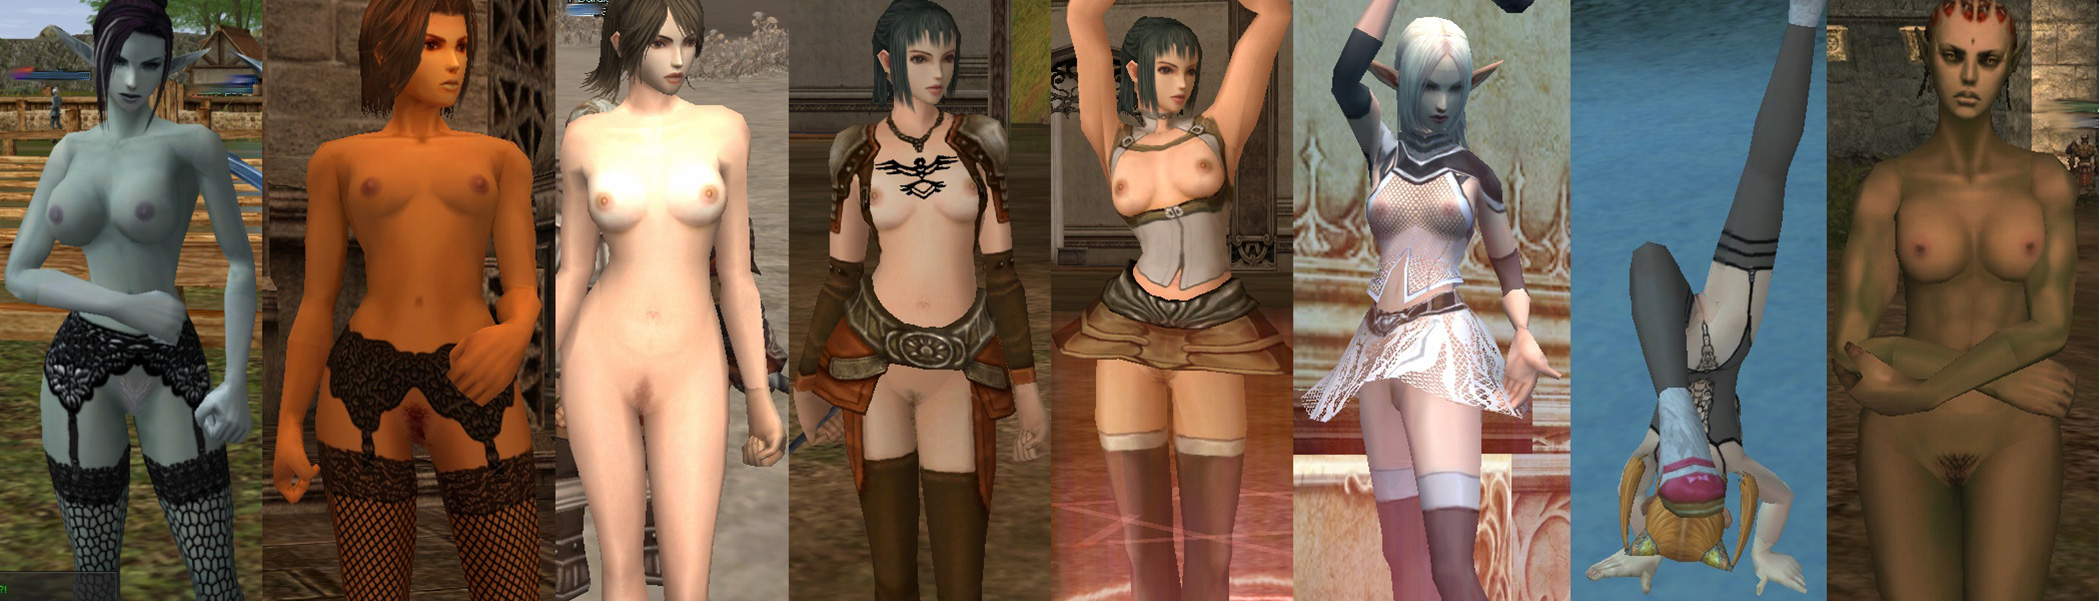 Lineage 2 sex sexy photo